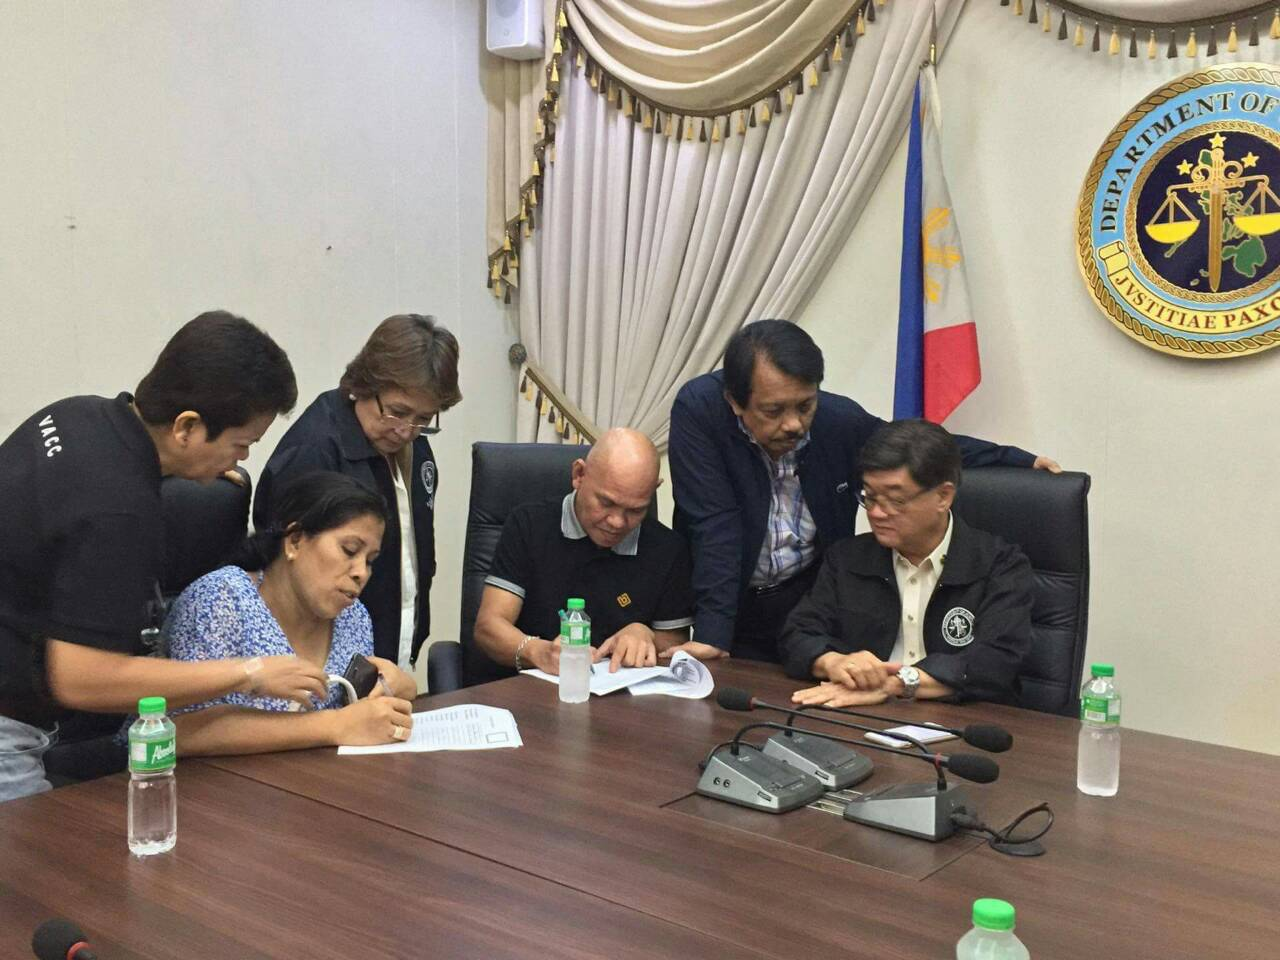 APPLICATION. Lorenza and Saldy delos Santos apply for the Witness Protection Program of the Department of Justice on August 29, 2017. With them is Justice Secretary Alexander Aguirre II and Dante Jimenez, president of the Volunteers Against Crime and Corruption (VACC). Photo courtesy of the DOJ